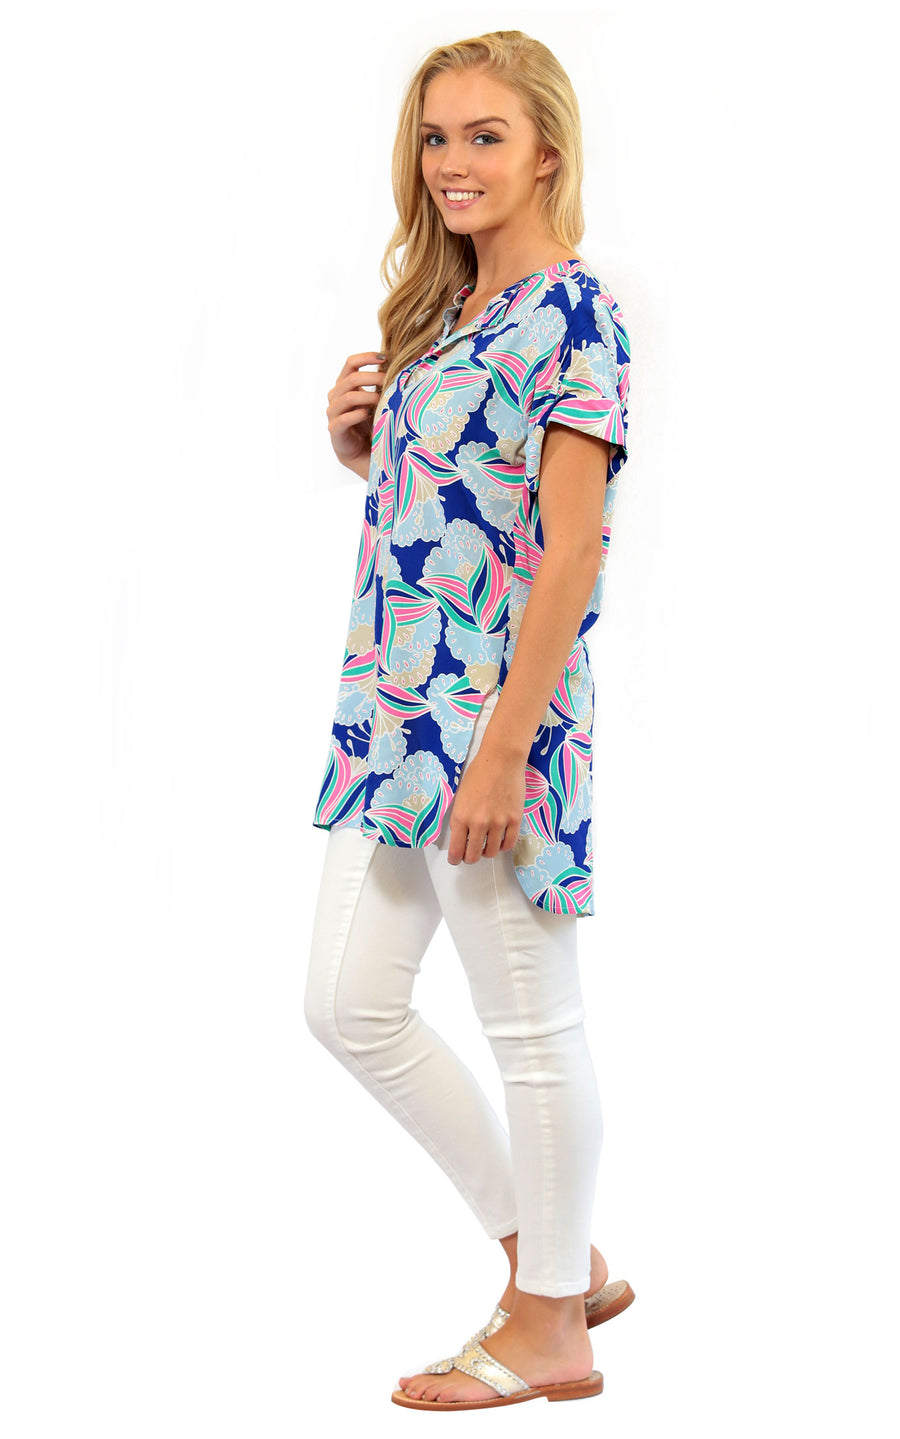 All For Color-Water Lily Judith Cuffed Tunic Blouse - FINAL SALE-Tops